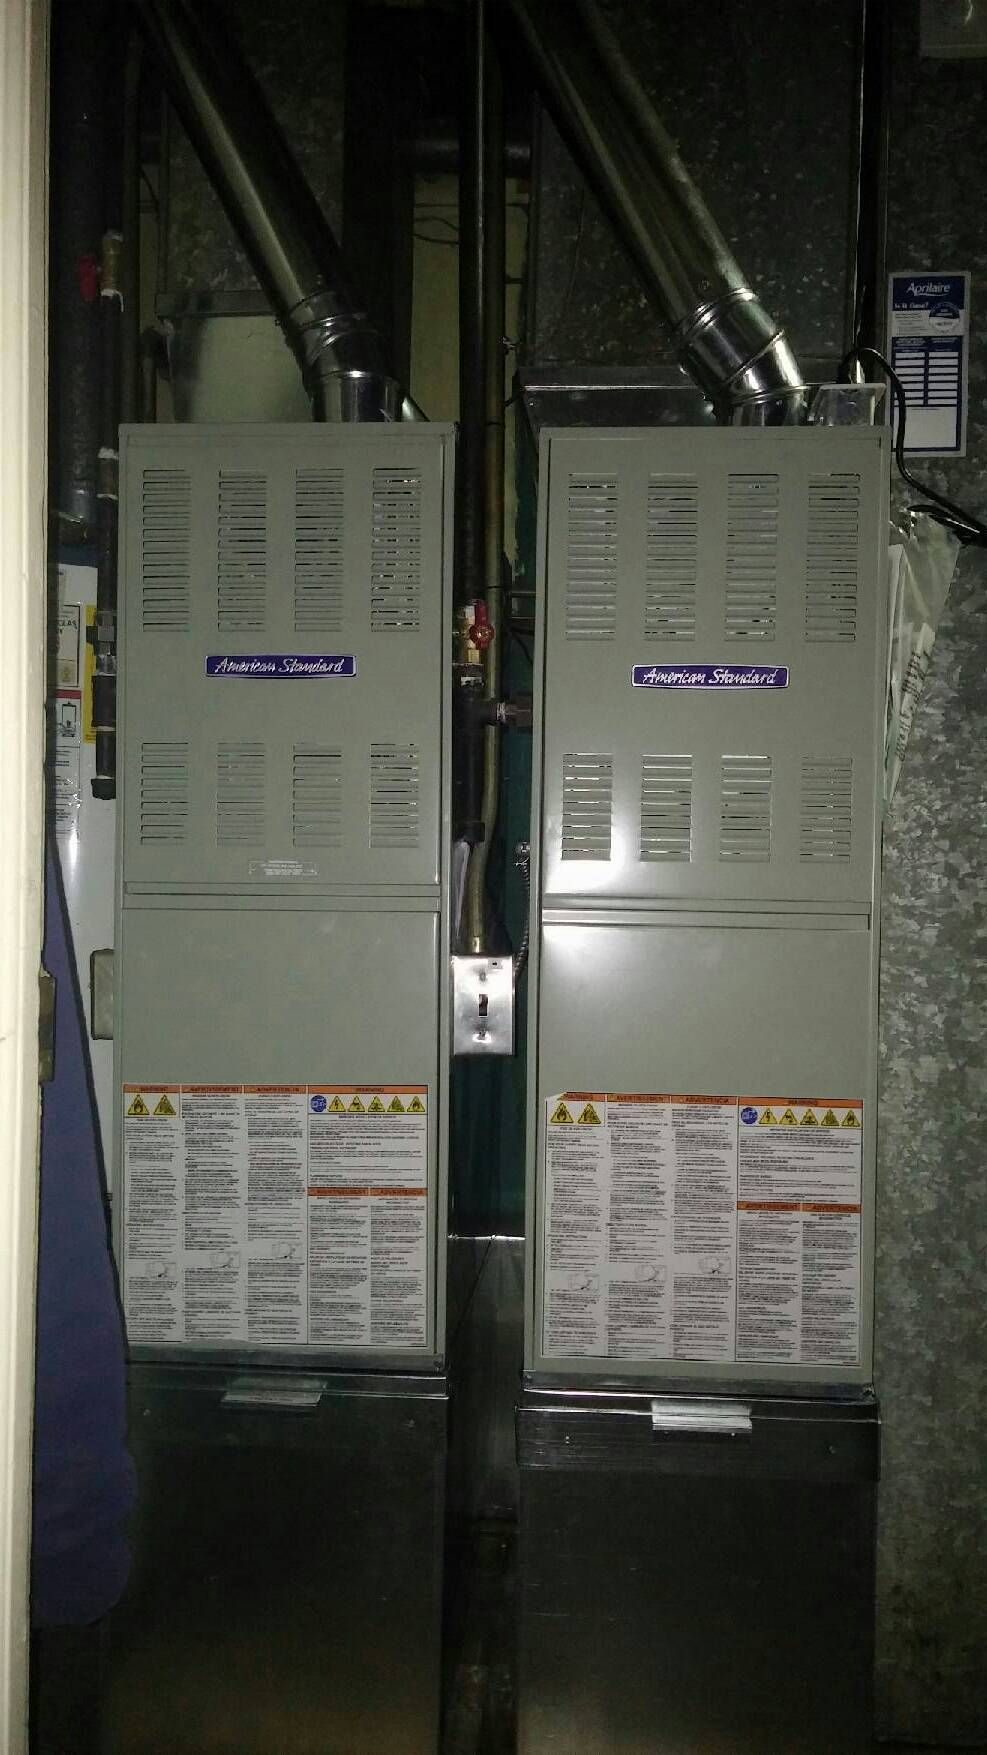 Here Are 2 American Standard Aue1 Furnaces Mounted On Furnace